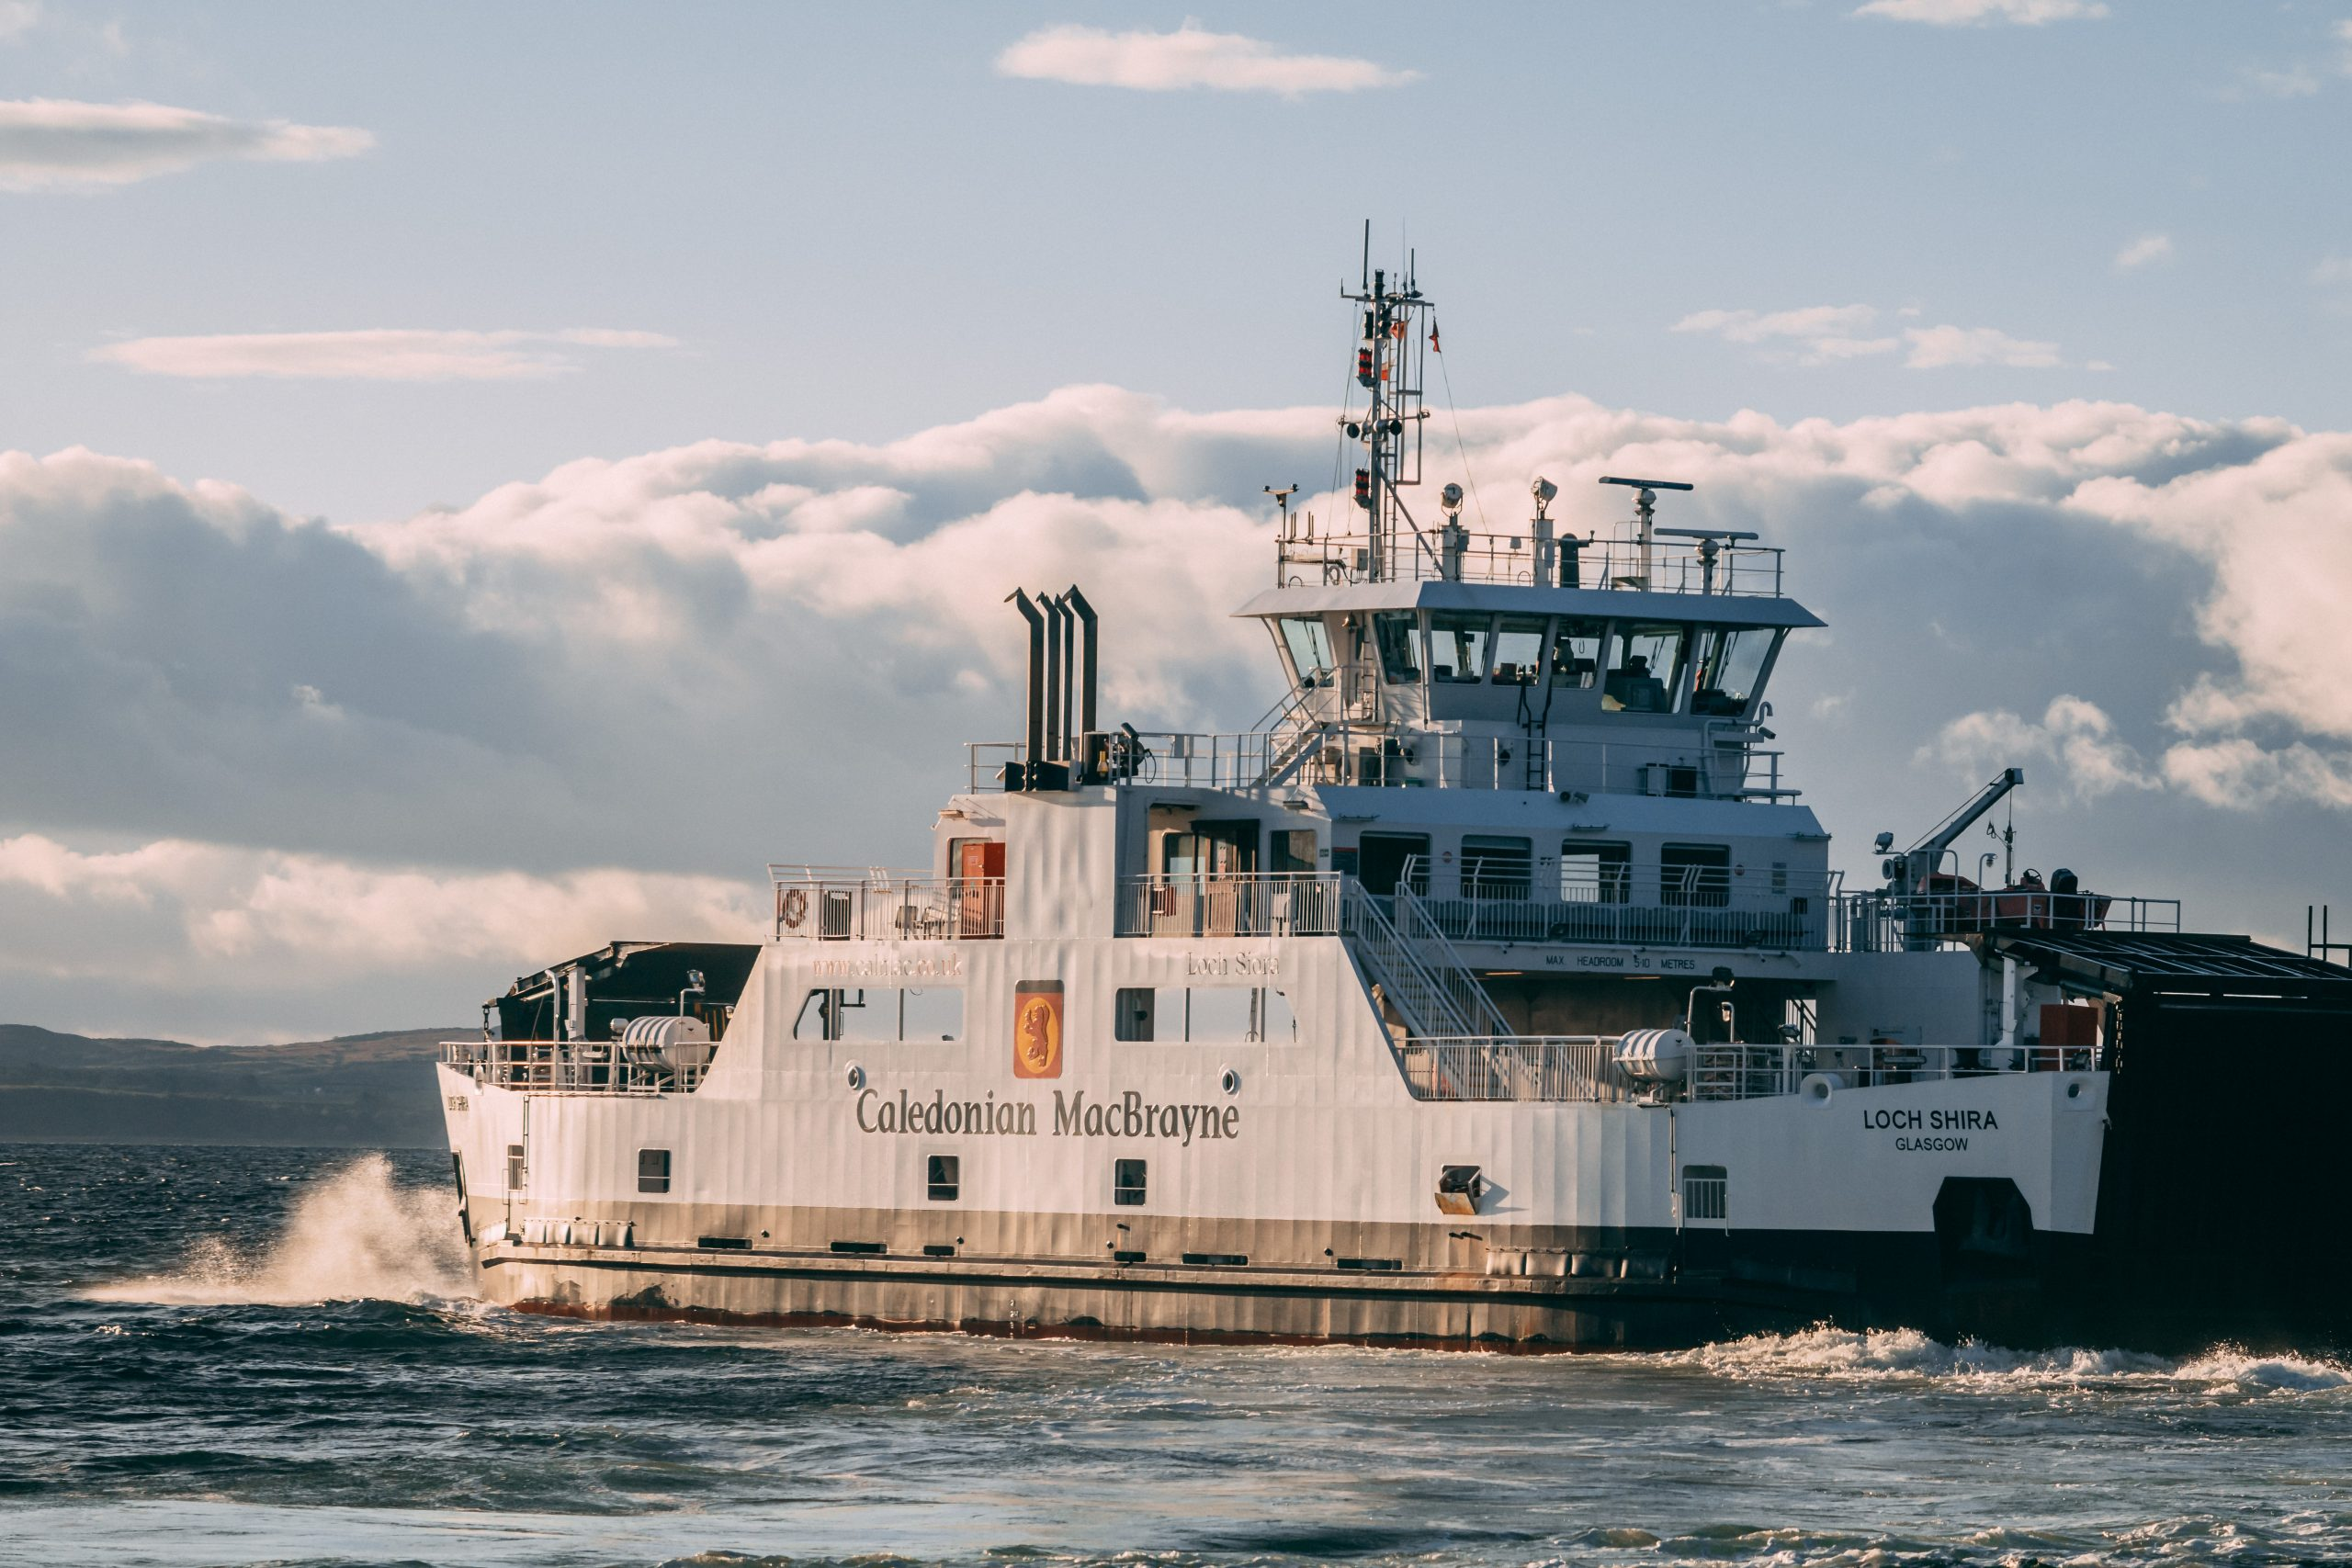 Cal Mac Millport Ferry to Scotland's most Accessible Island